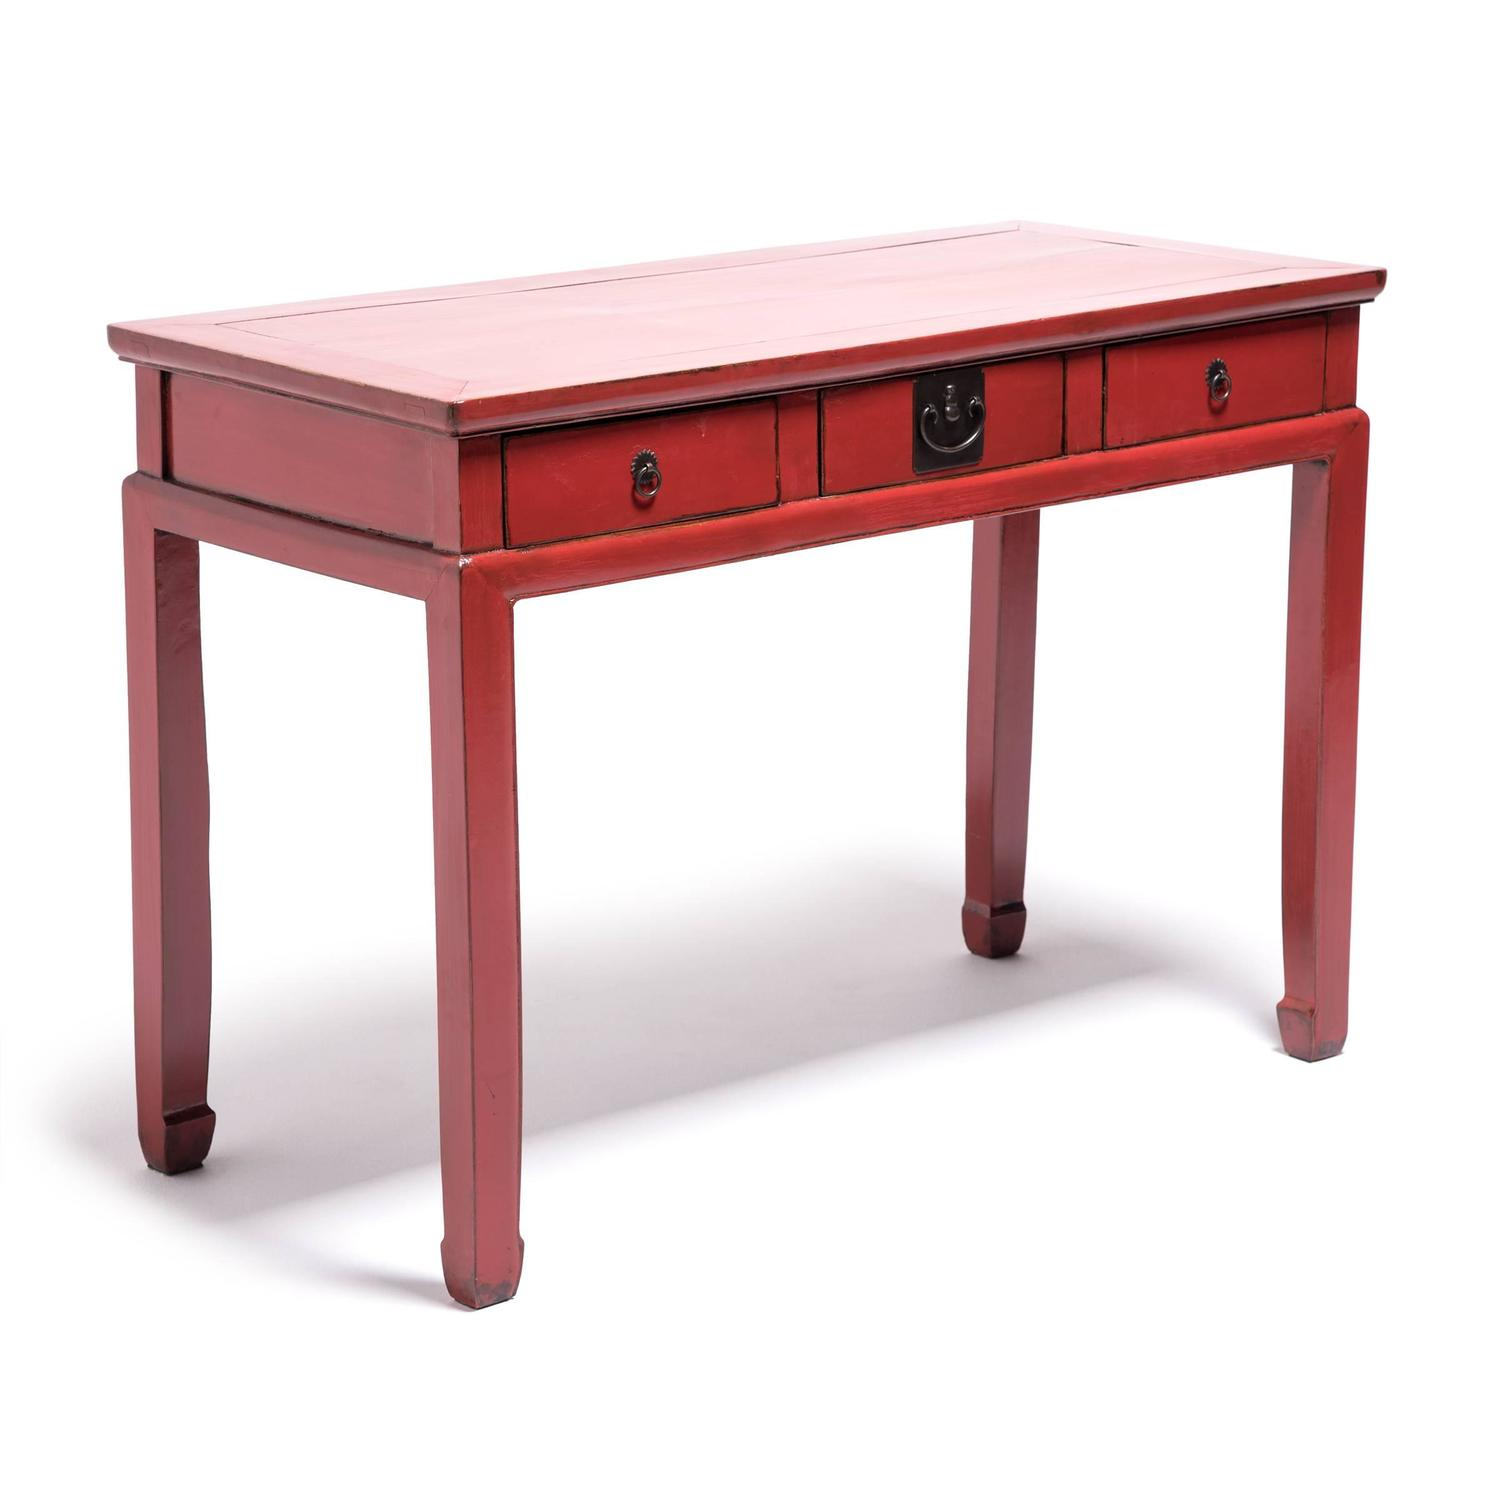 Red lacquer chinese desk for sale at 1stdibs for Table fifty two 52 w elm st chicago il 60610